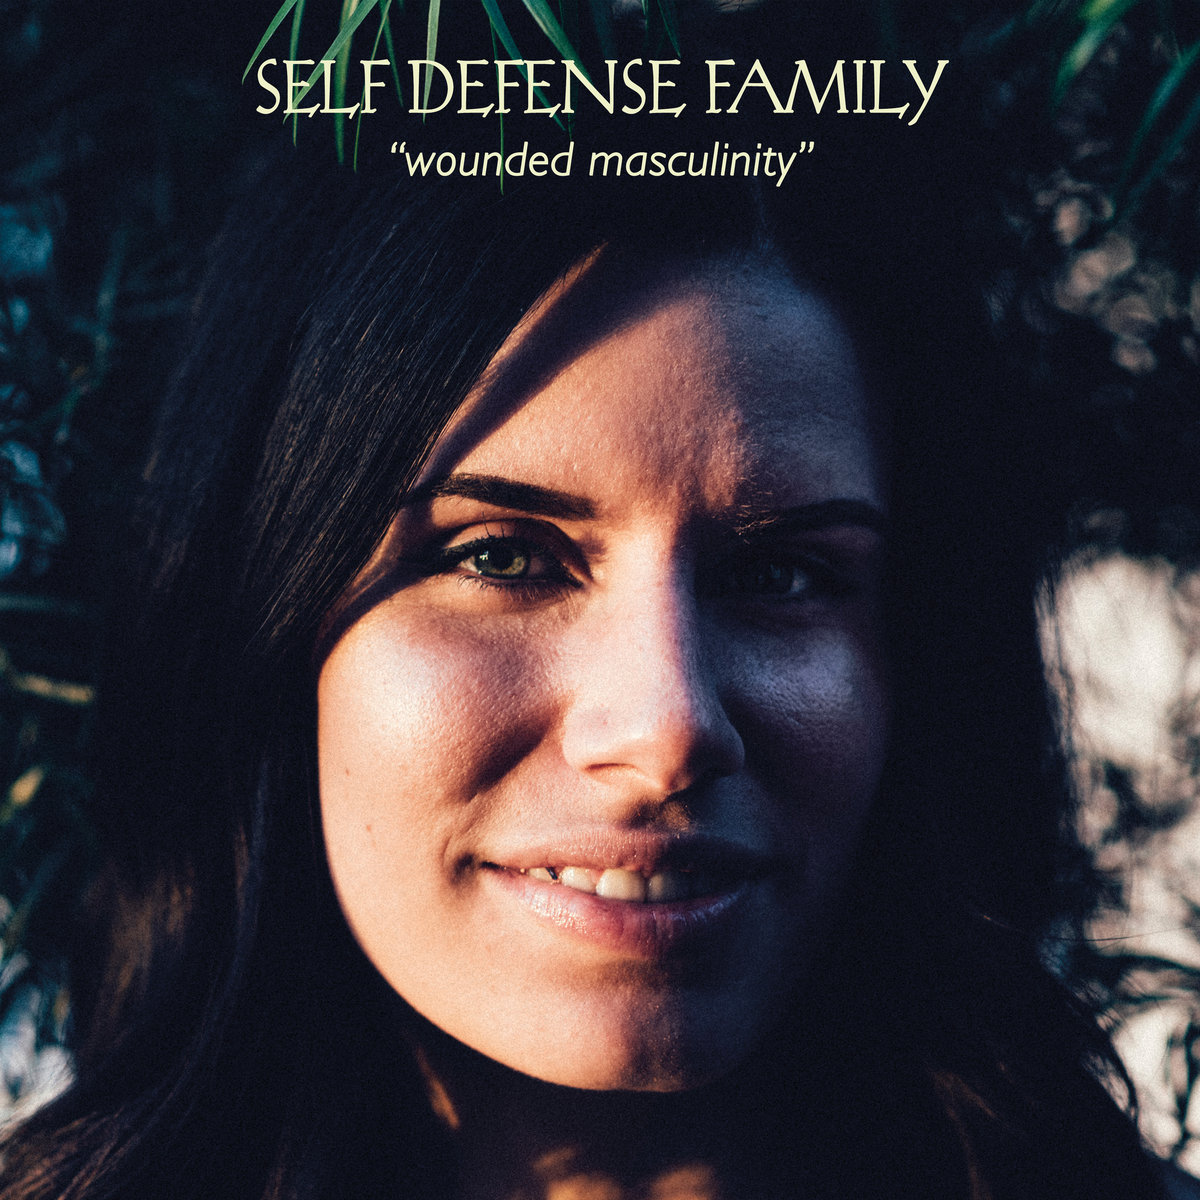 Self Defense Family - Wounded Masculinity